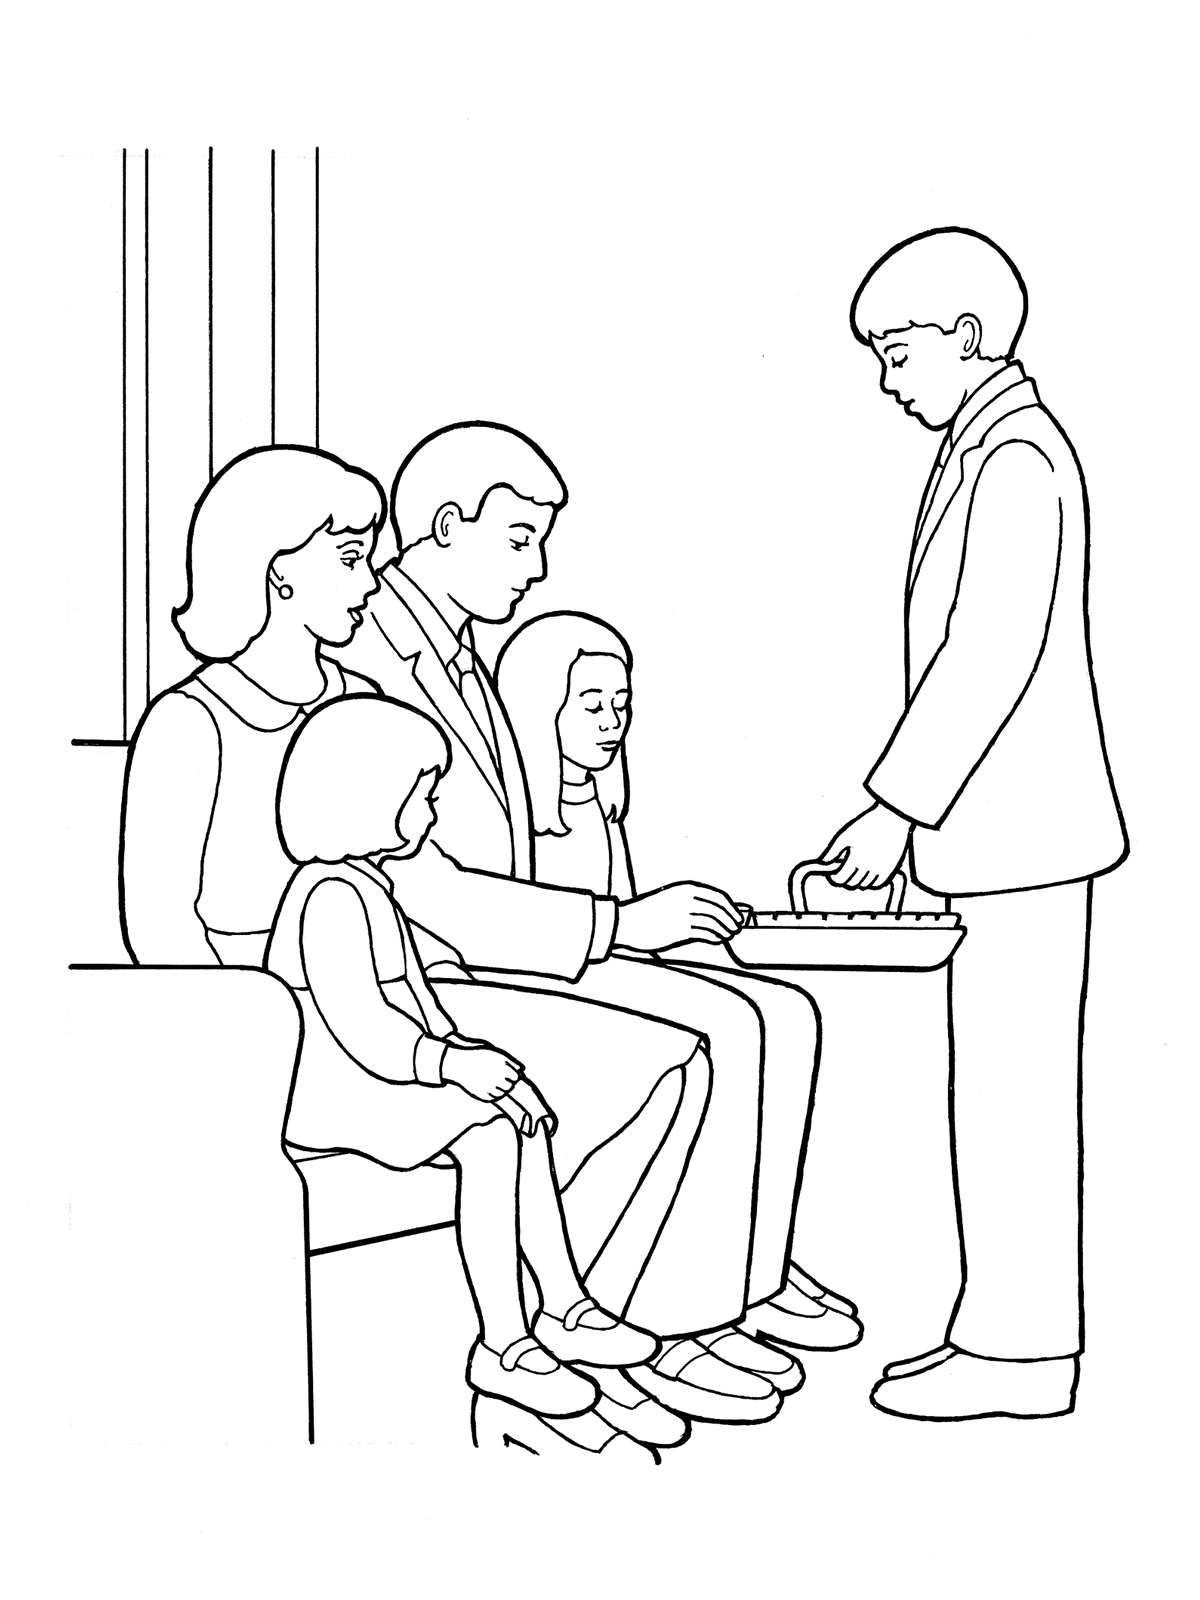 coloring pages clipart - photo#44